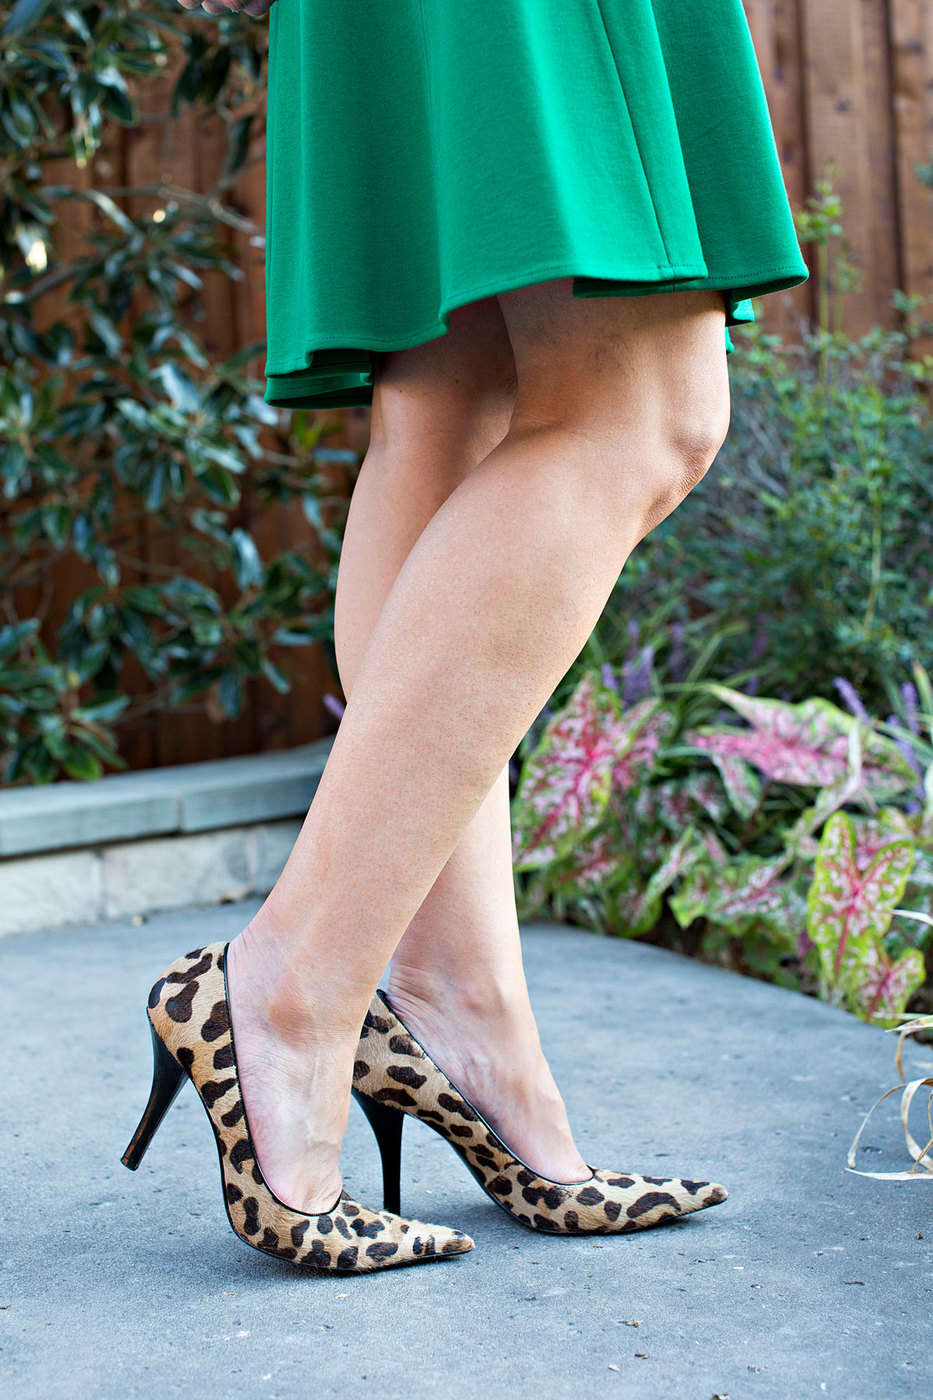 Leopard Print Shoes Are Having A Moment